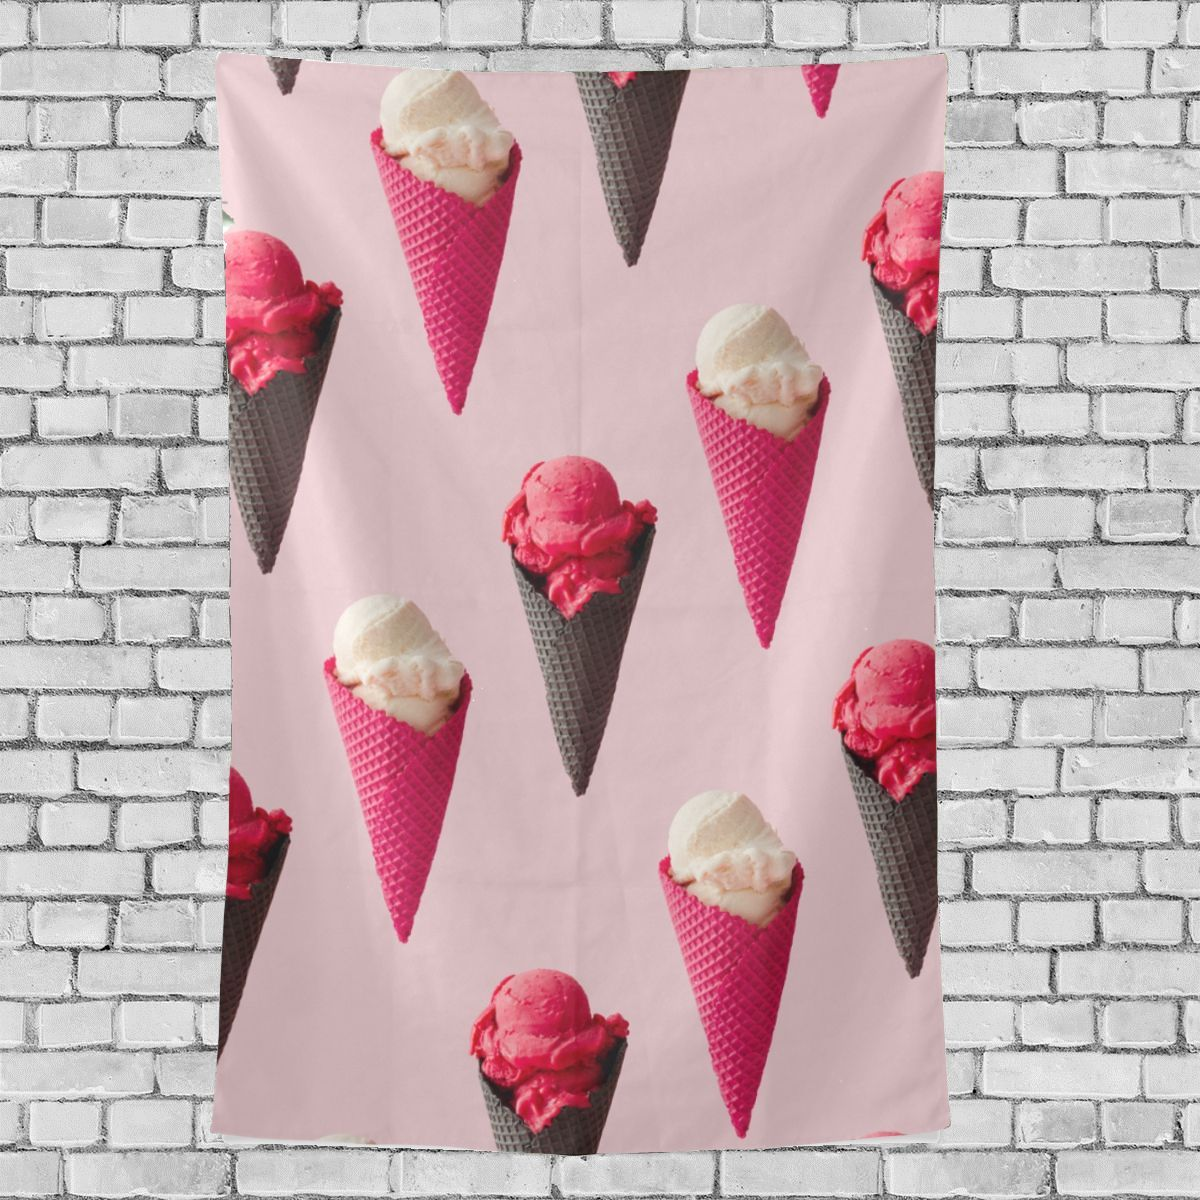 Bedroom Art Supplies: Art And Wall Decor Ice Cream Cool Summer Supply Pattern